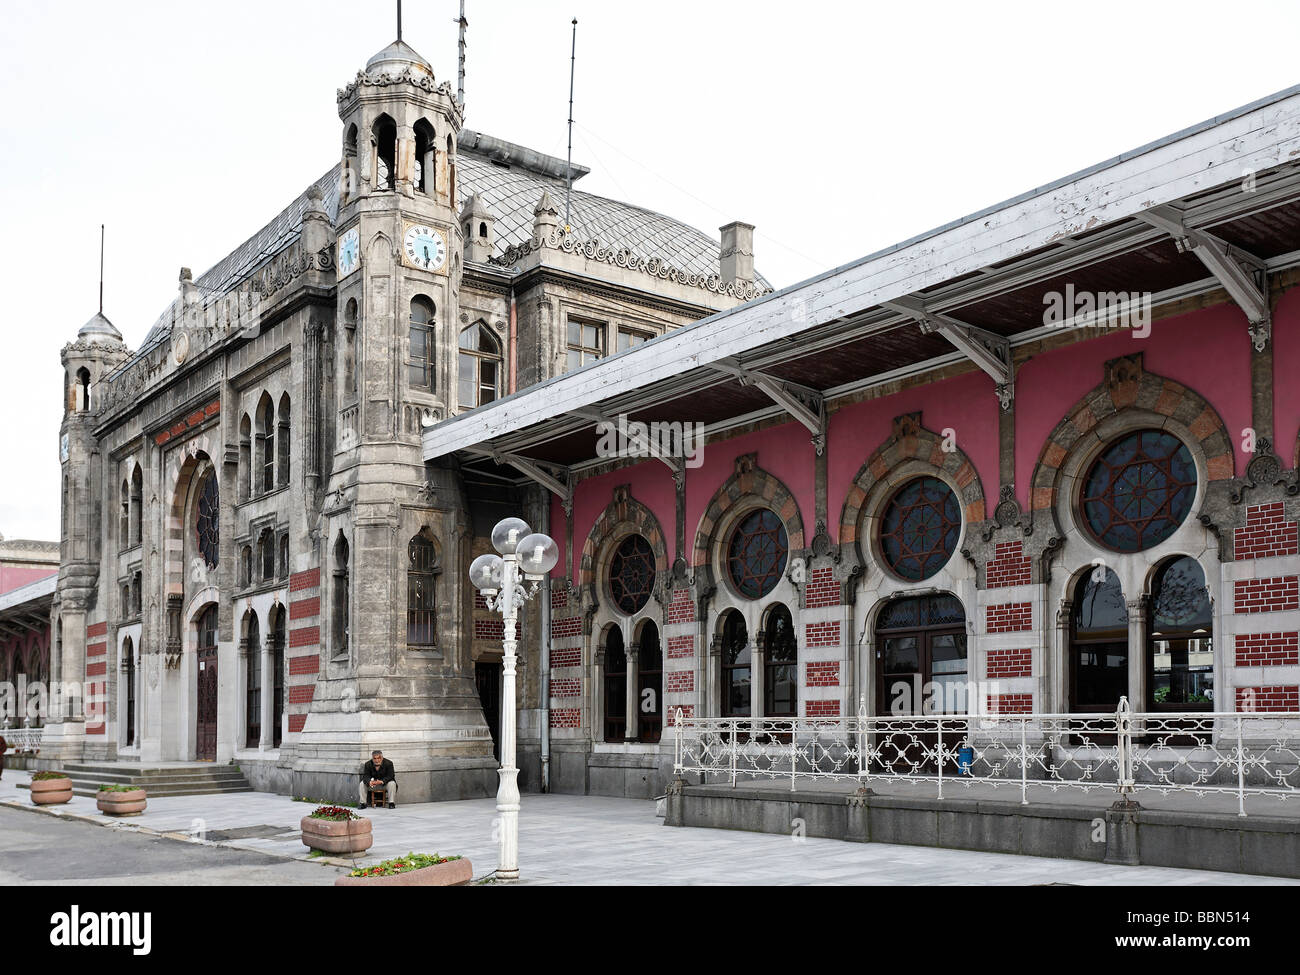 Sirkeci railway Station, Ottoman art nouveau building, former terminal stop of the Orient Express, Istanbul, Turkey - Stock Image